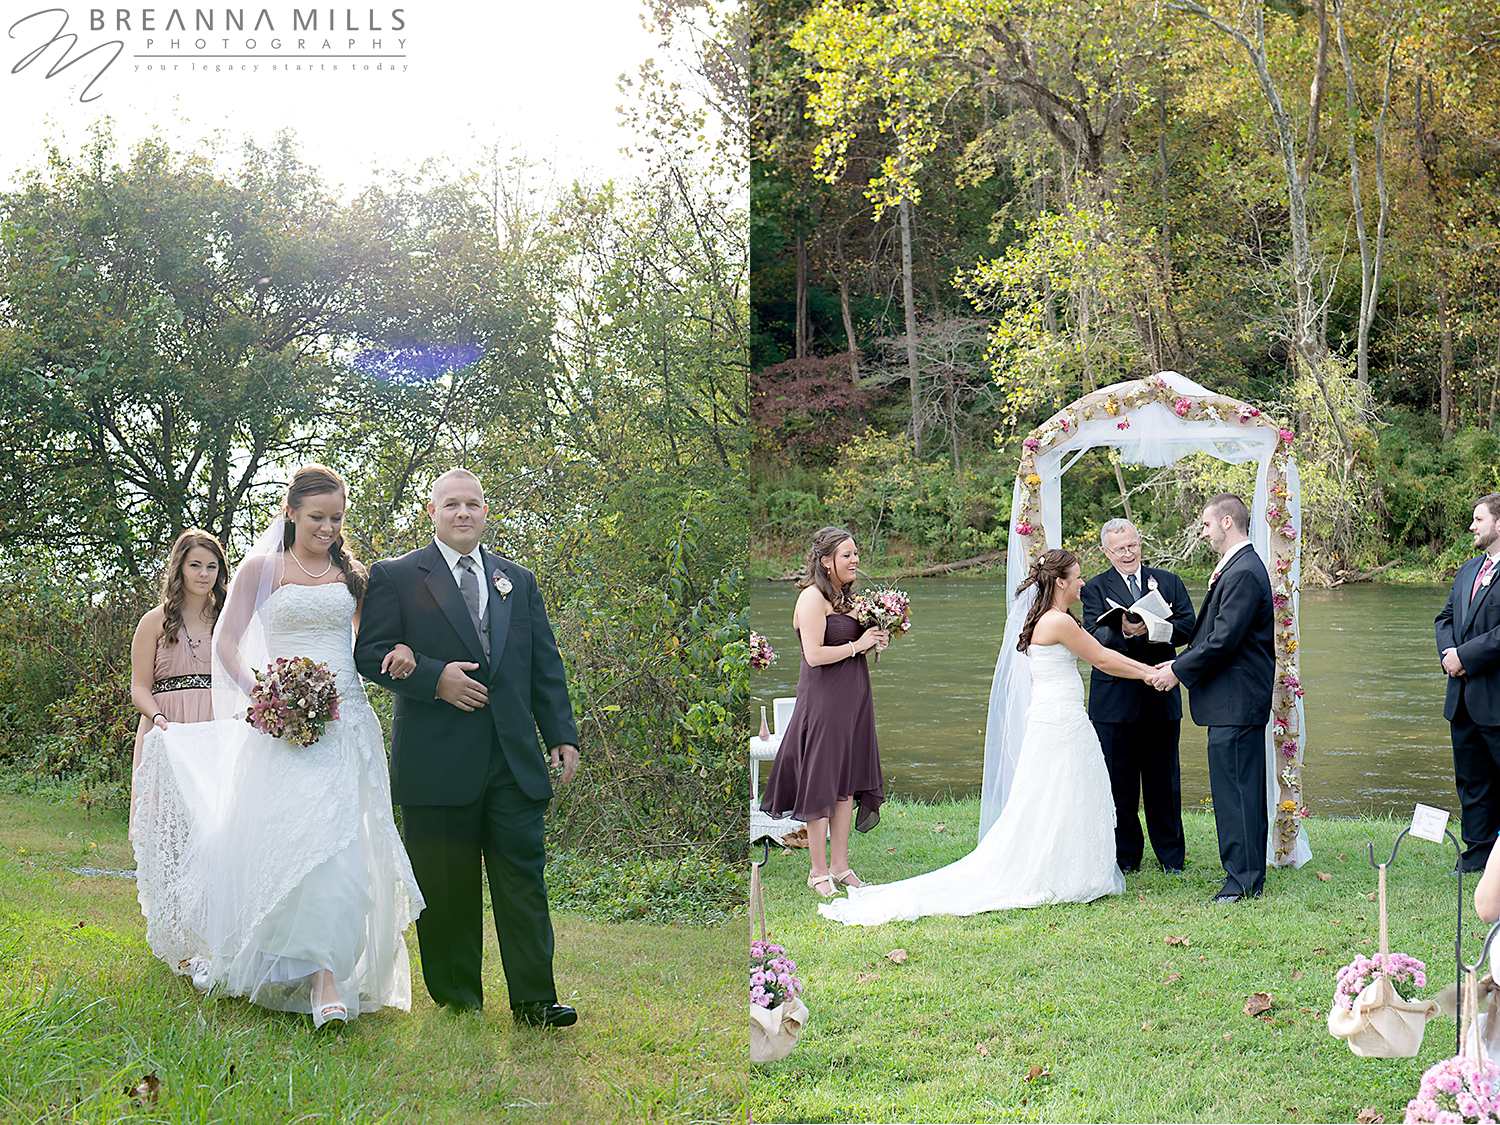 Johnson City wedding photographer, Breanna Mills Photography captures wedding ceremony on wedding day.